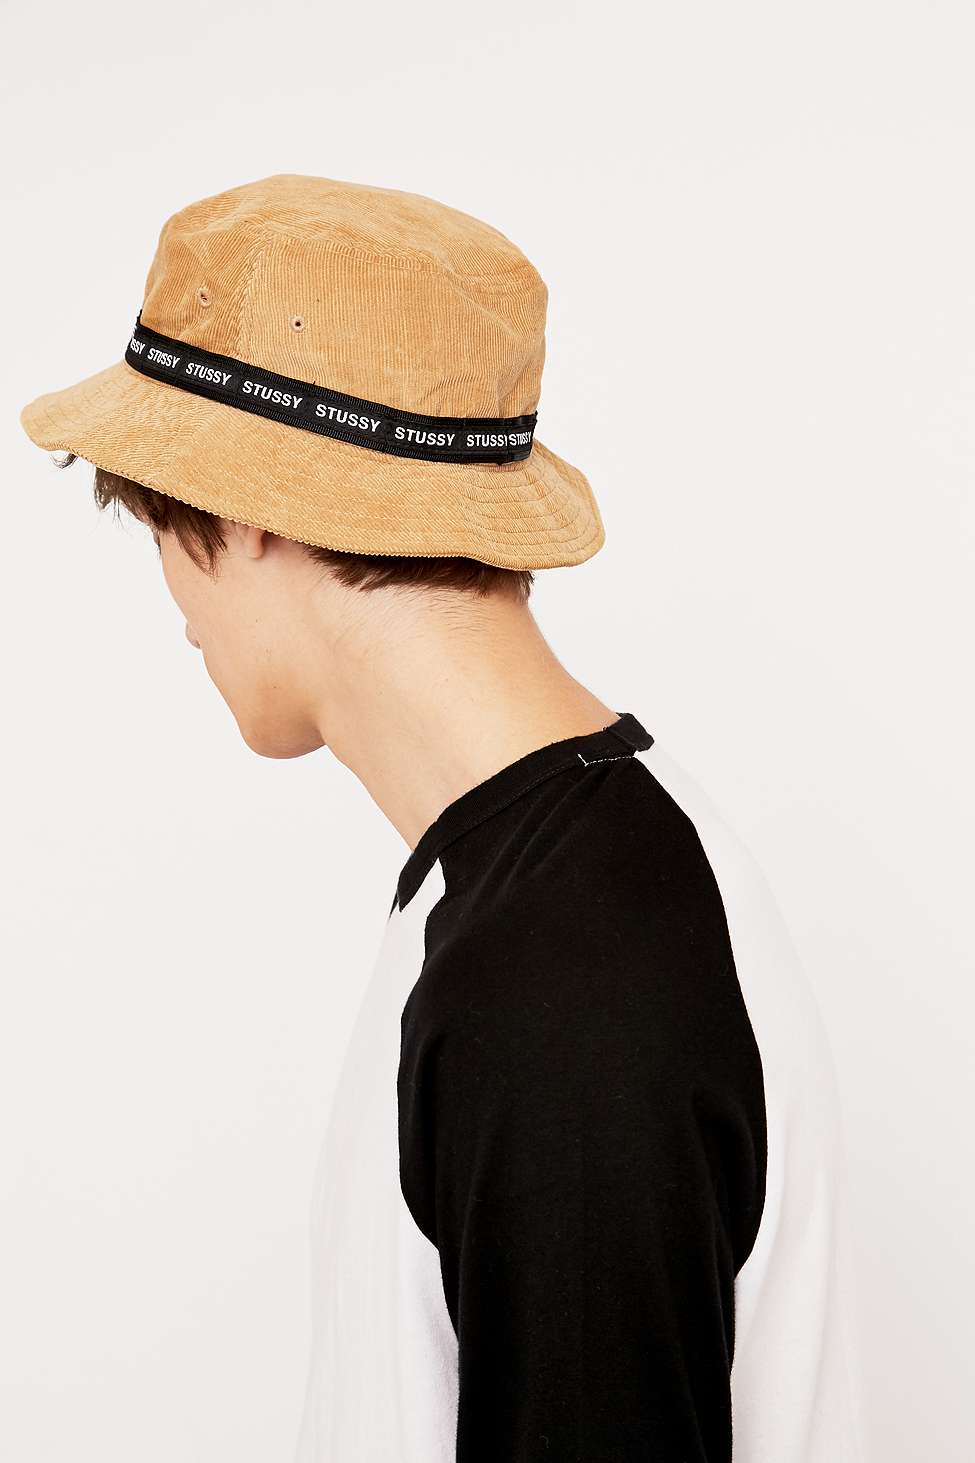 Stussy Tan Band Cord Bucket Hat in Natural for Men - Lyst 3e3939beb12